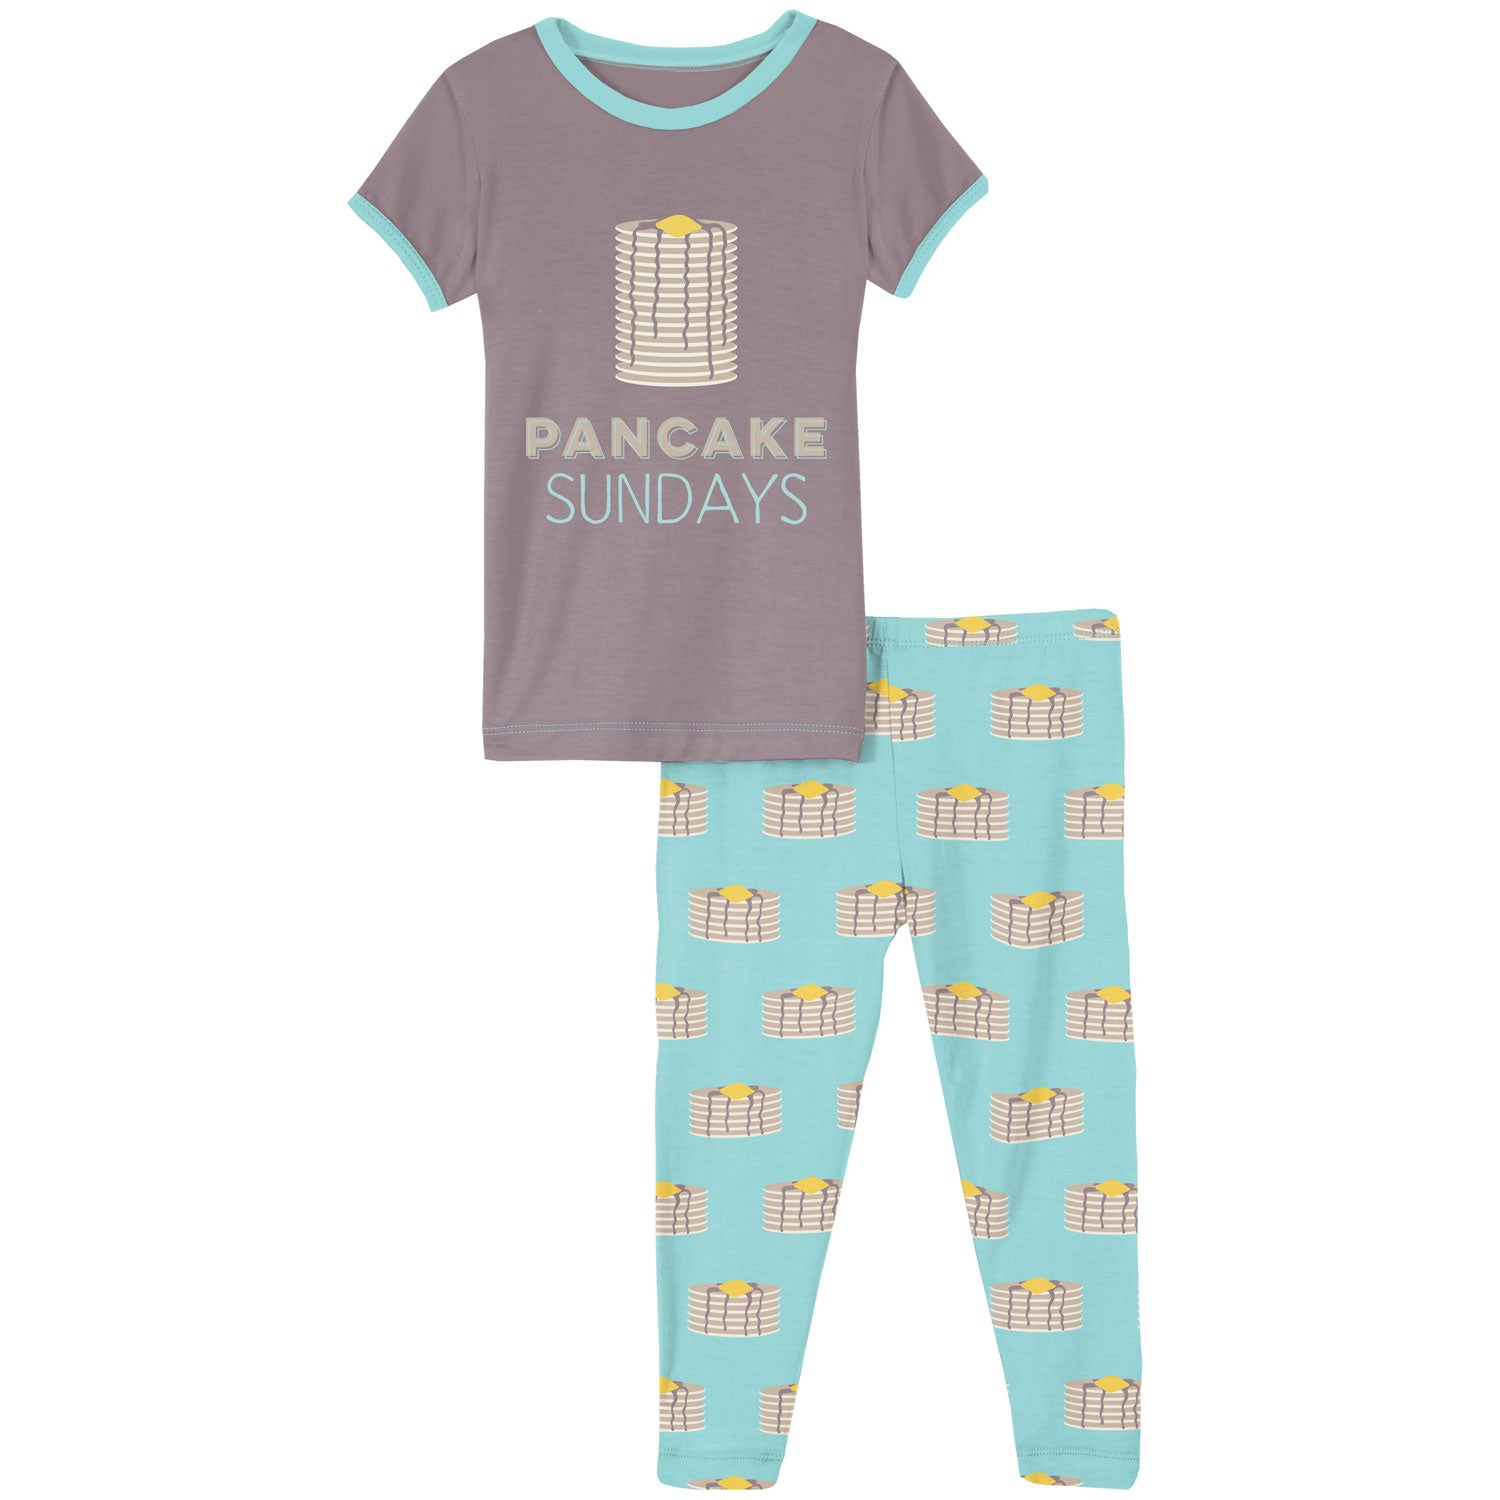 KicKee Pants Short Sleeve Pajama Set - Summer Sky Pancakes